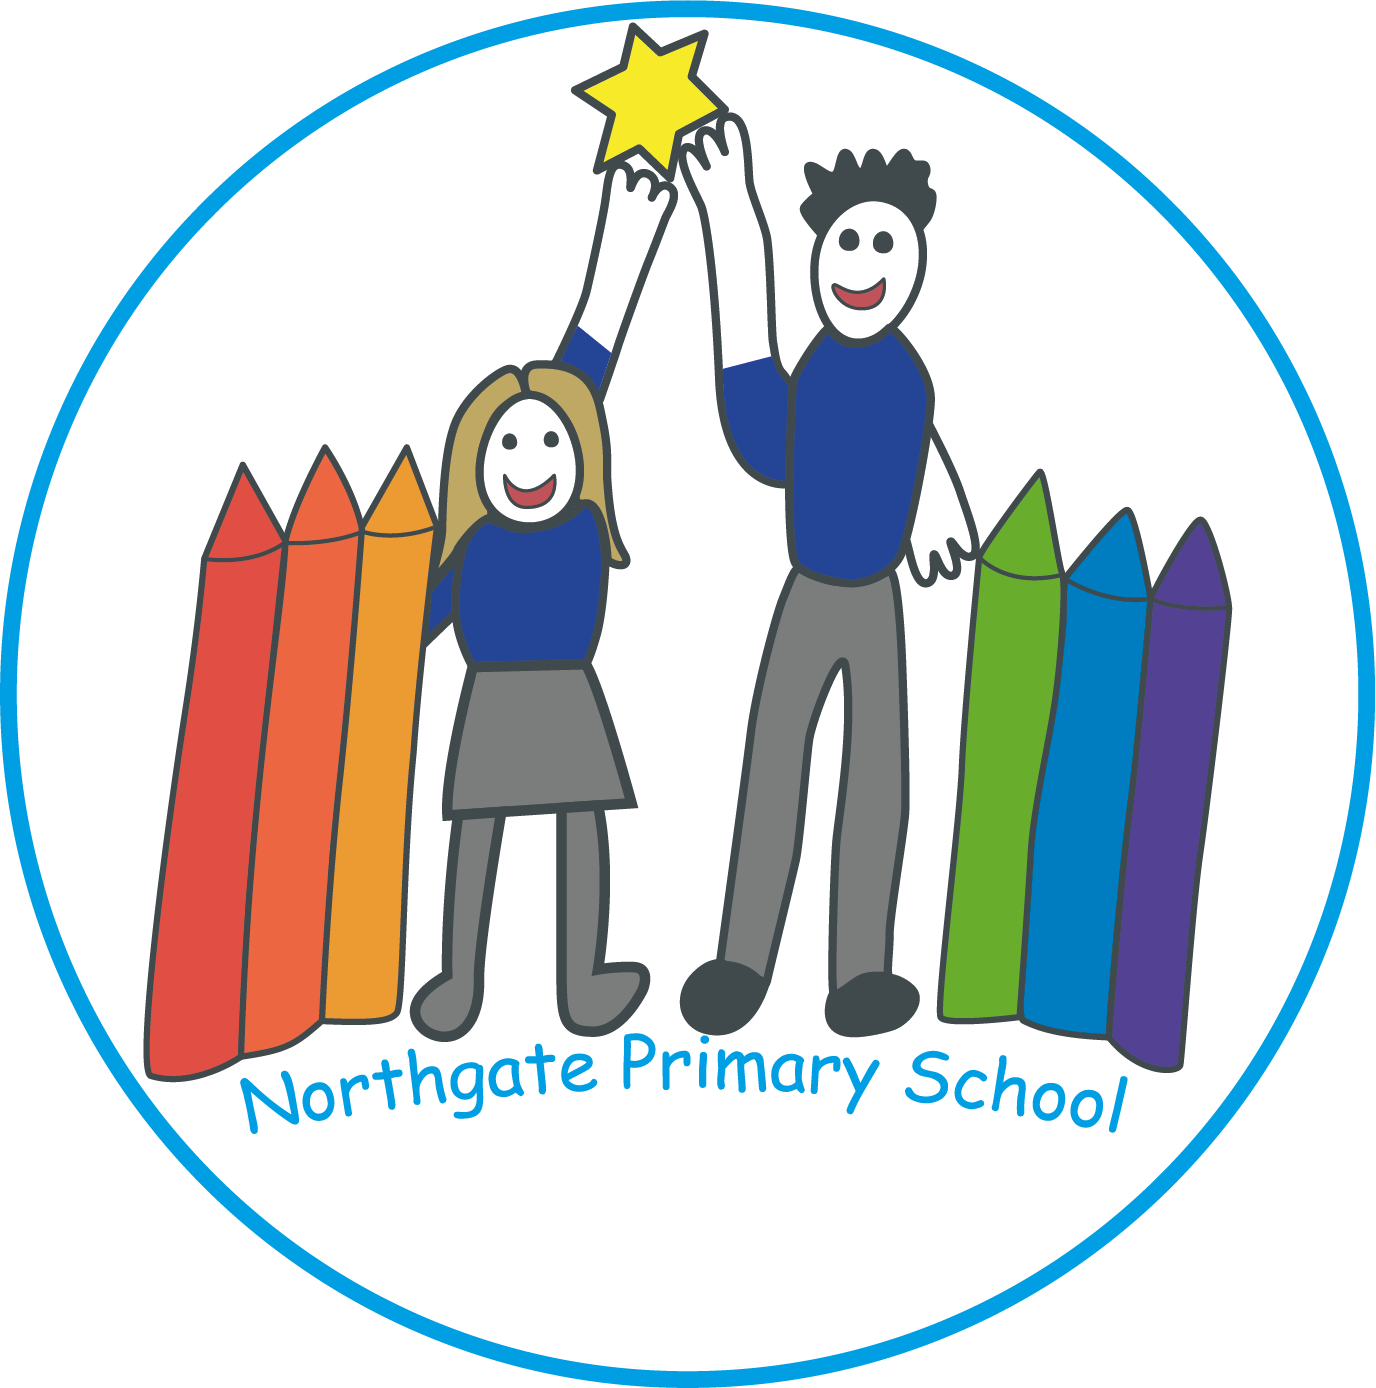 Northgate Primary School